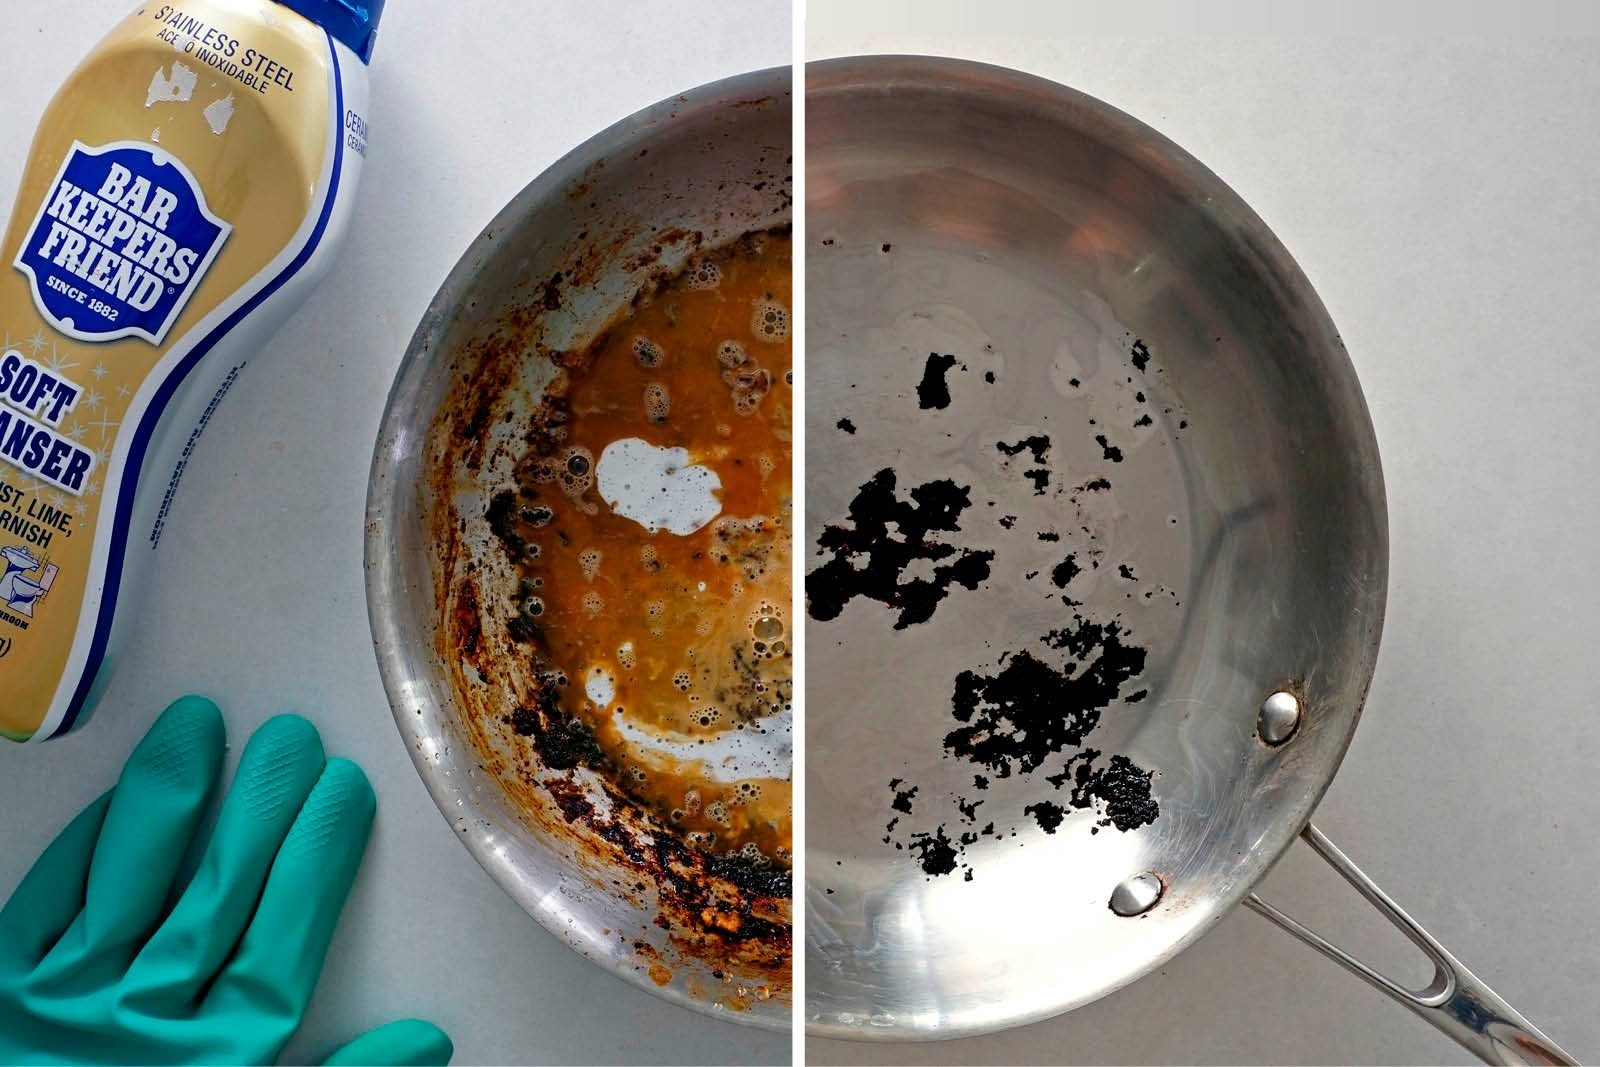 Bar Keepers Friend Cleaning Pan